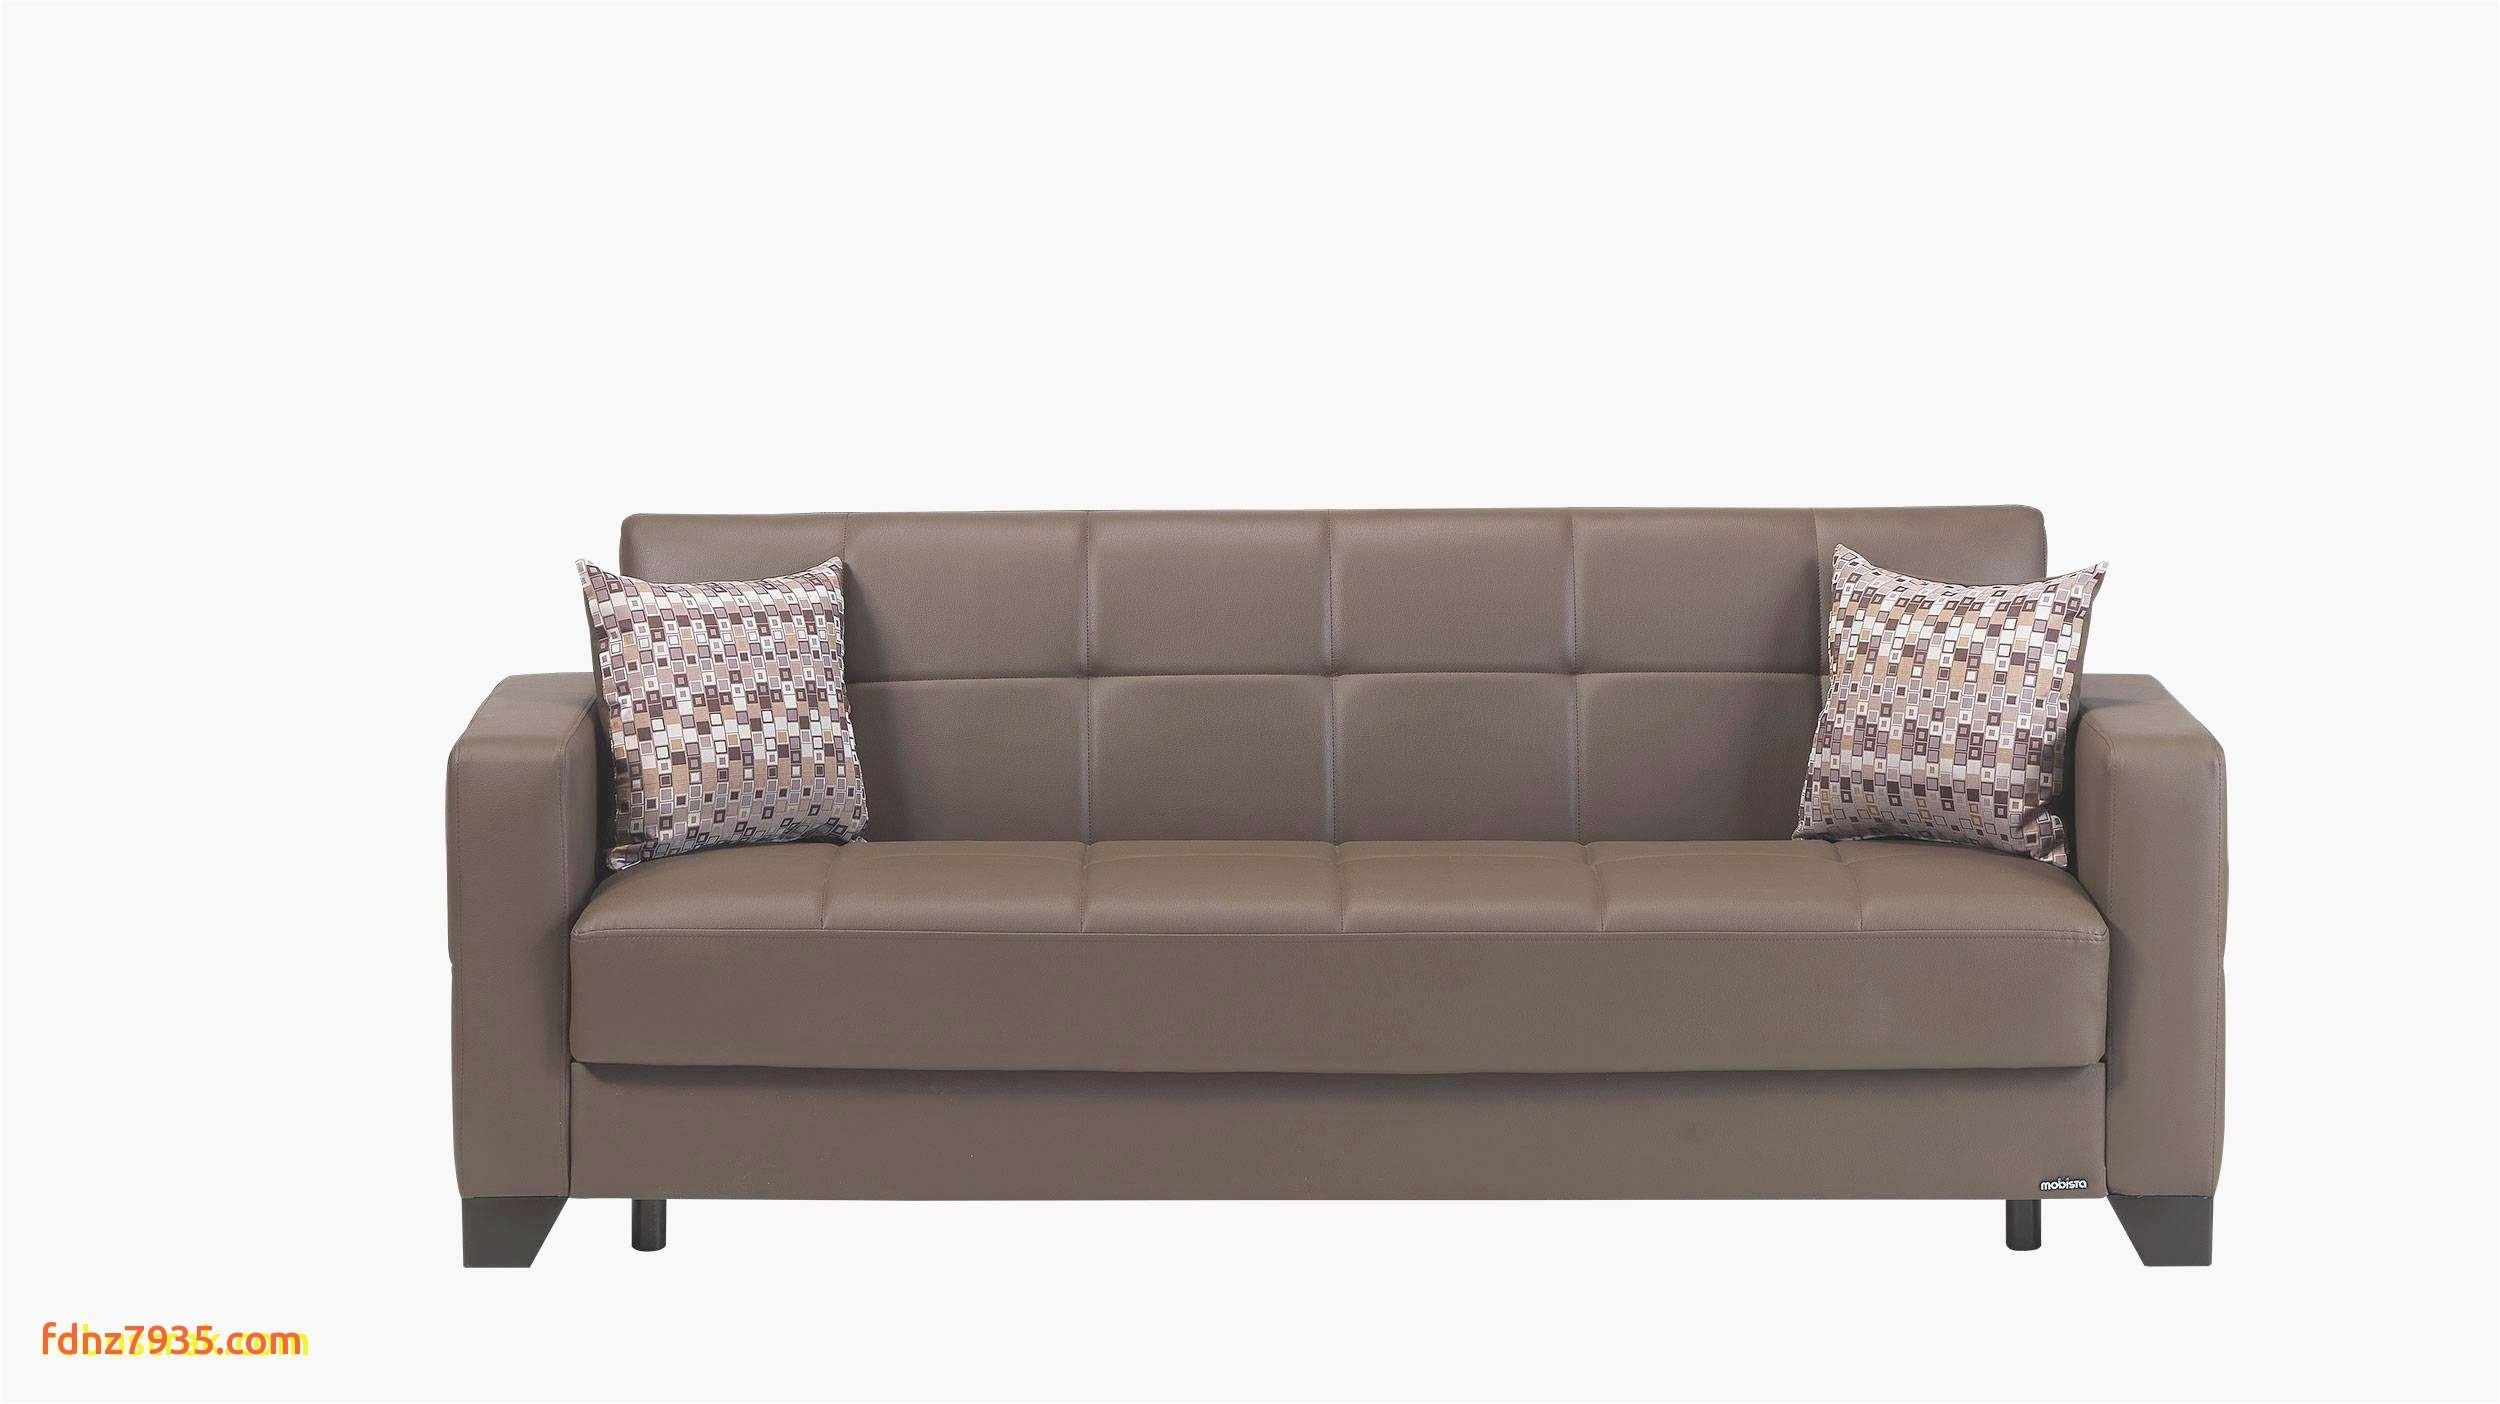 Pin On Sofa Bed Design